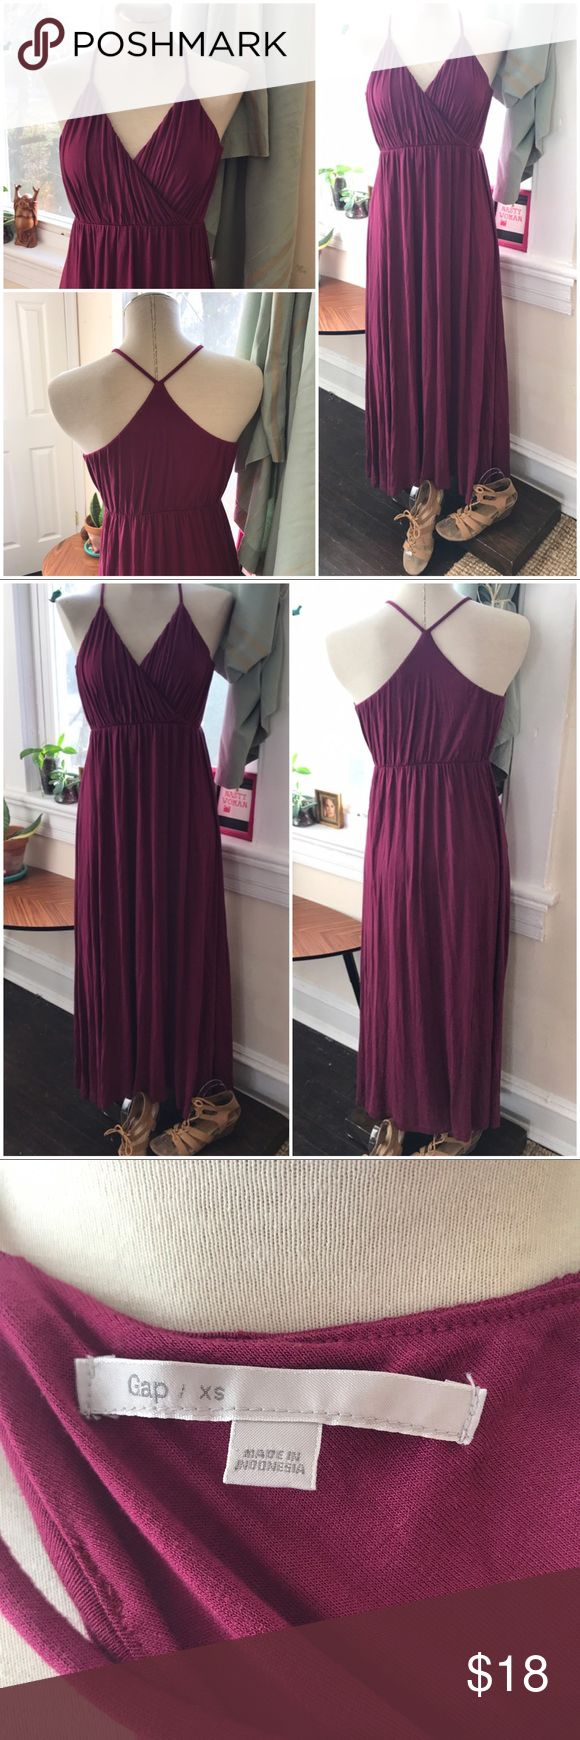 """GAP cotton stretch Grecian goddess maxi dress EUC only worn once Deep magenta purple color Greek goddess style dress  High waisted, hits at small of rib cage / smallest area of waist Unstretched: 12"""", somewhat stretched 15.5""""  Skirt length: 38"""" Bodice length: 9"""" Soft flowy dress cotton blend GAP Dresses Maxi"""